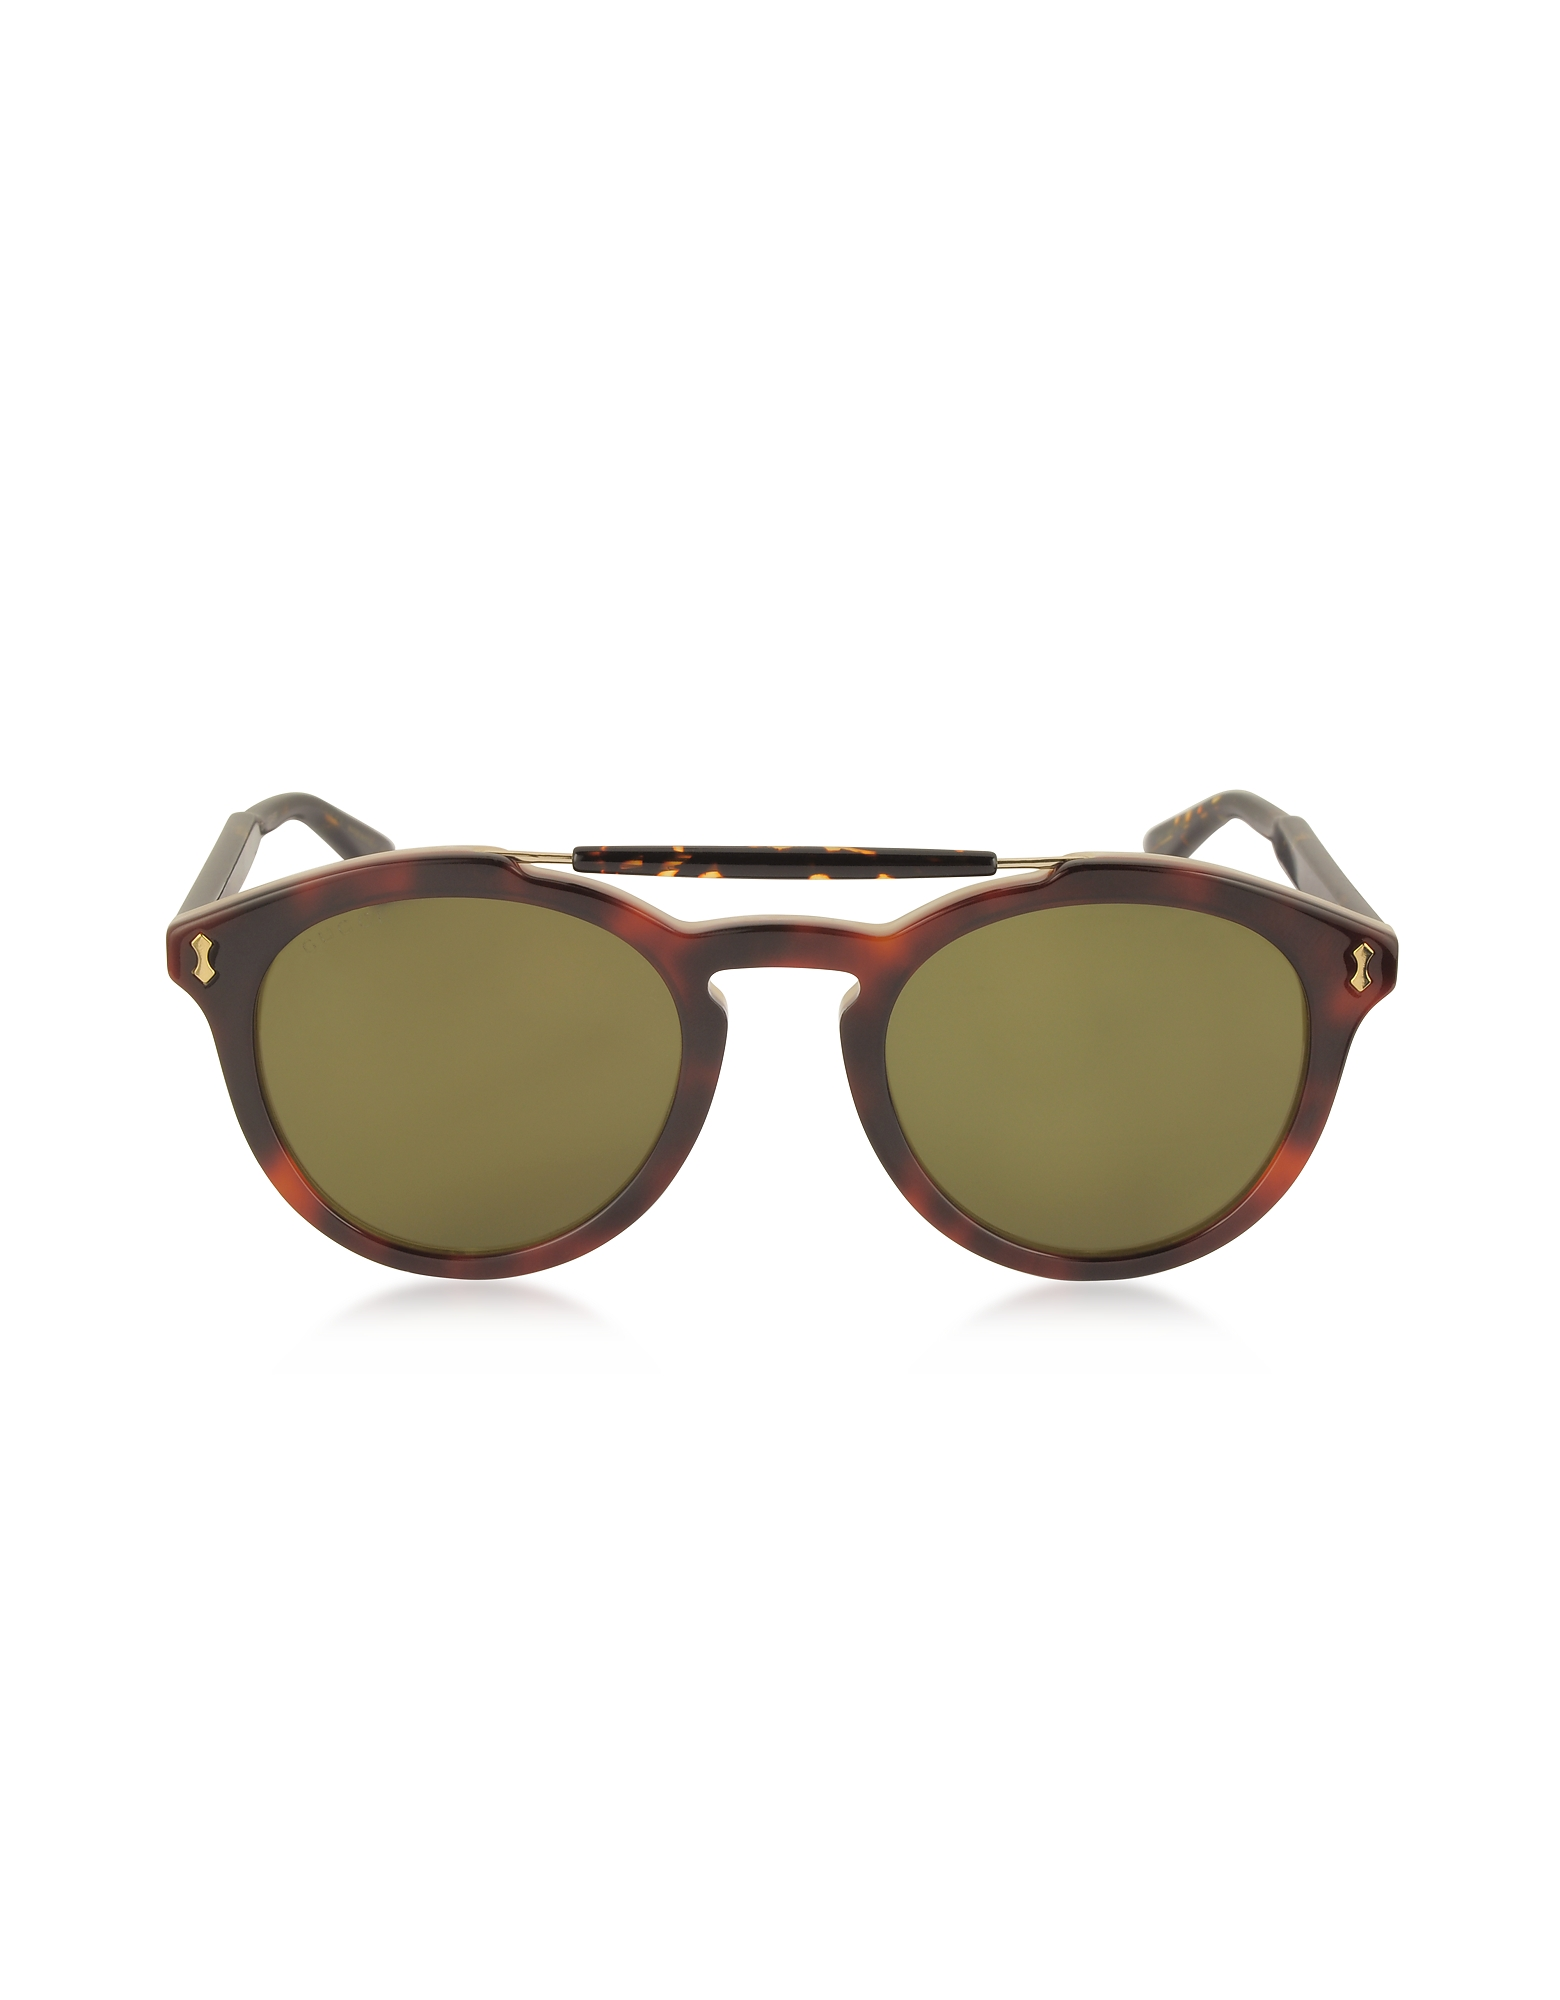 Gucci Sunglasses, GG0124S Acetate Round Aviator Men's Sunglasses